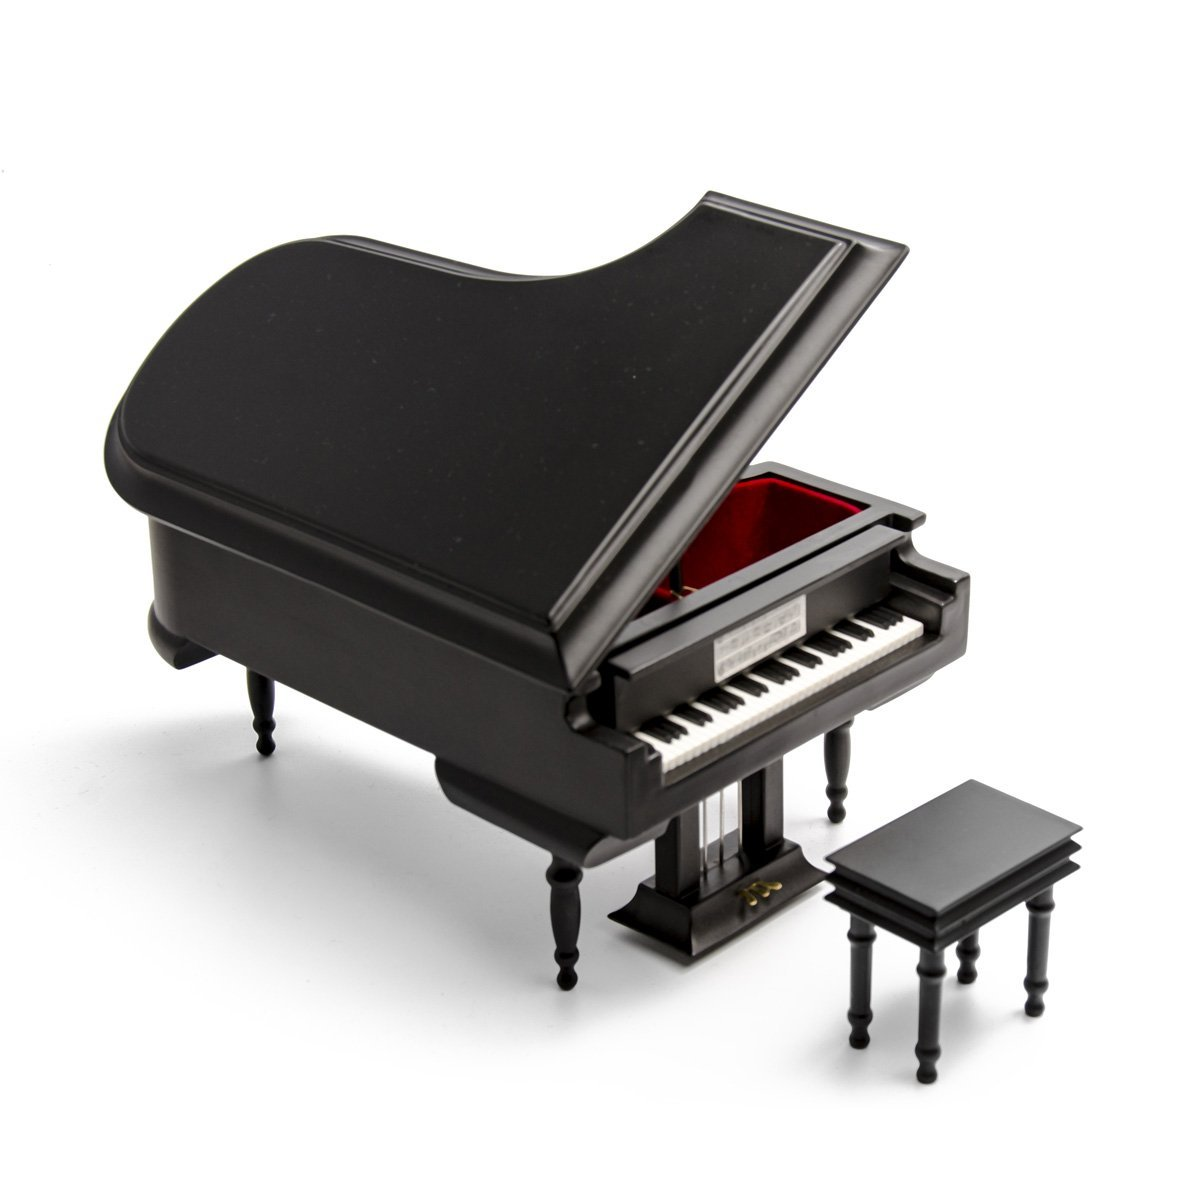 Sophisticated 18 Note Miniature Musical Matte Black Grand Piano With Bench - Over 400 Song Choices - Talk to the Animals